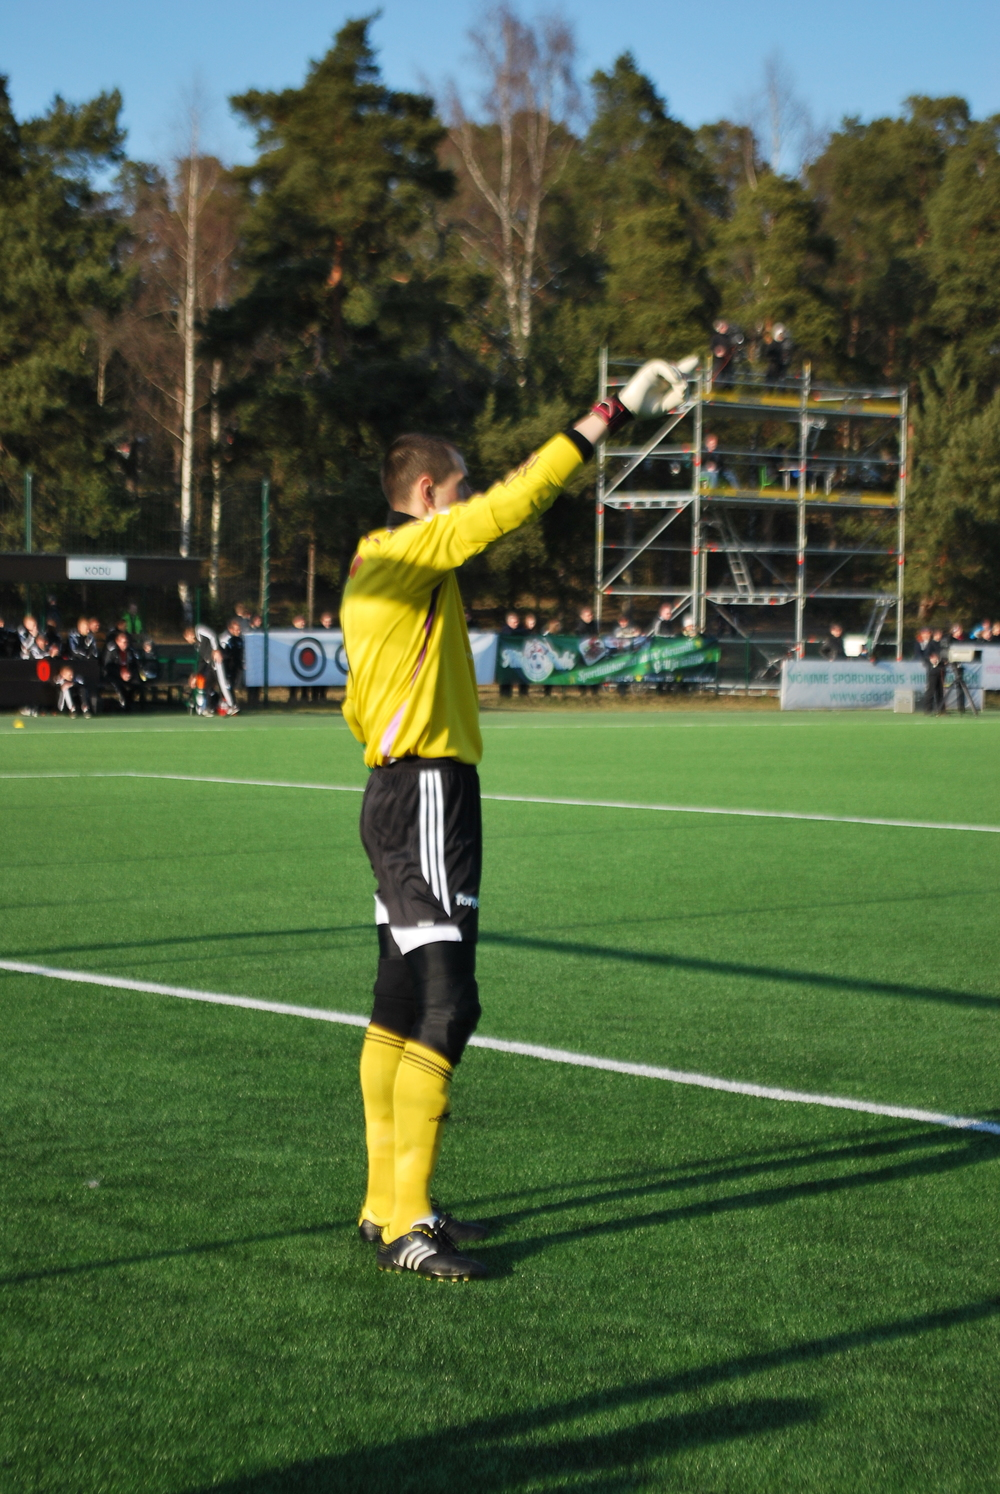 Roman Śmiśko, Levadia's goalkeeper and captain, was also a great protagonist between the sticks